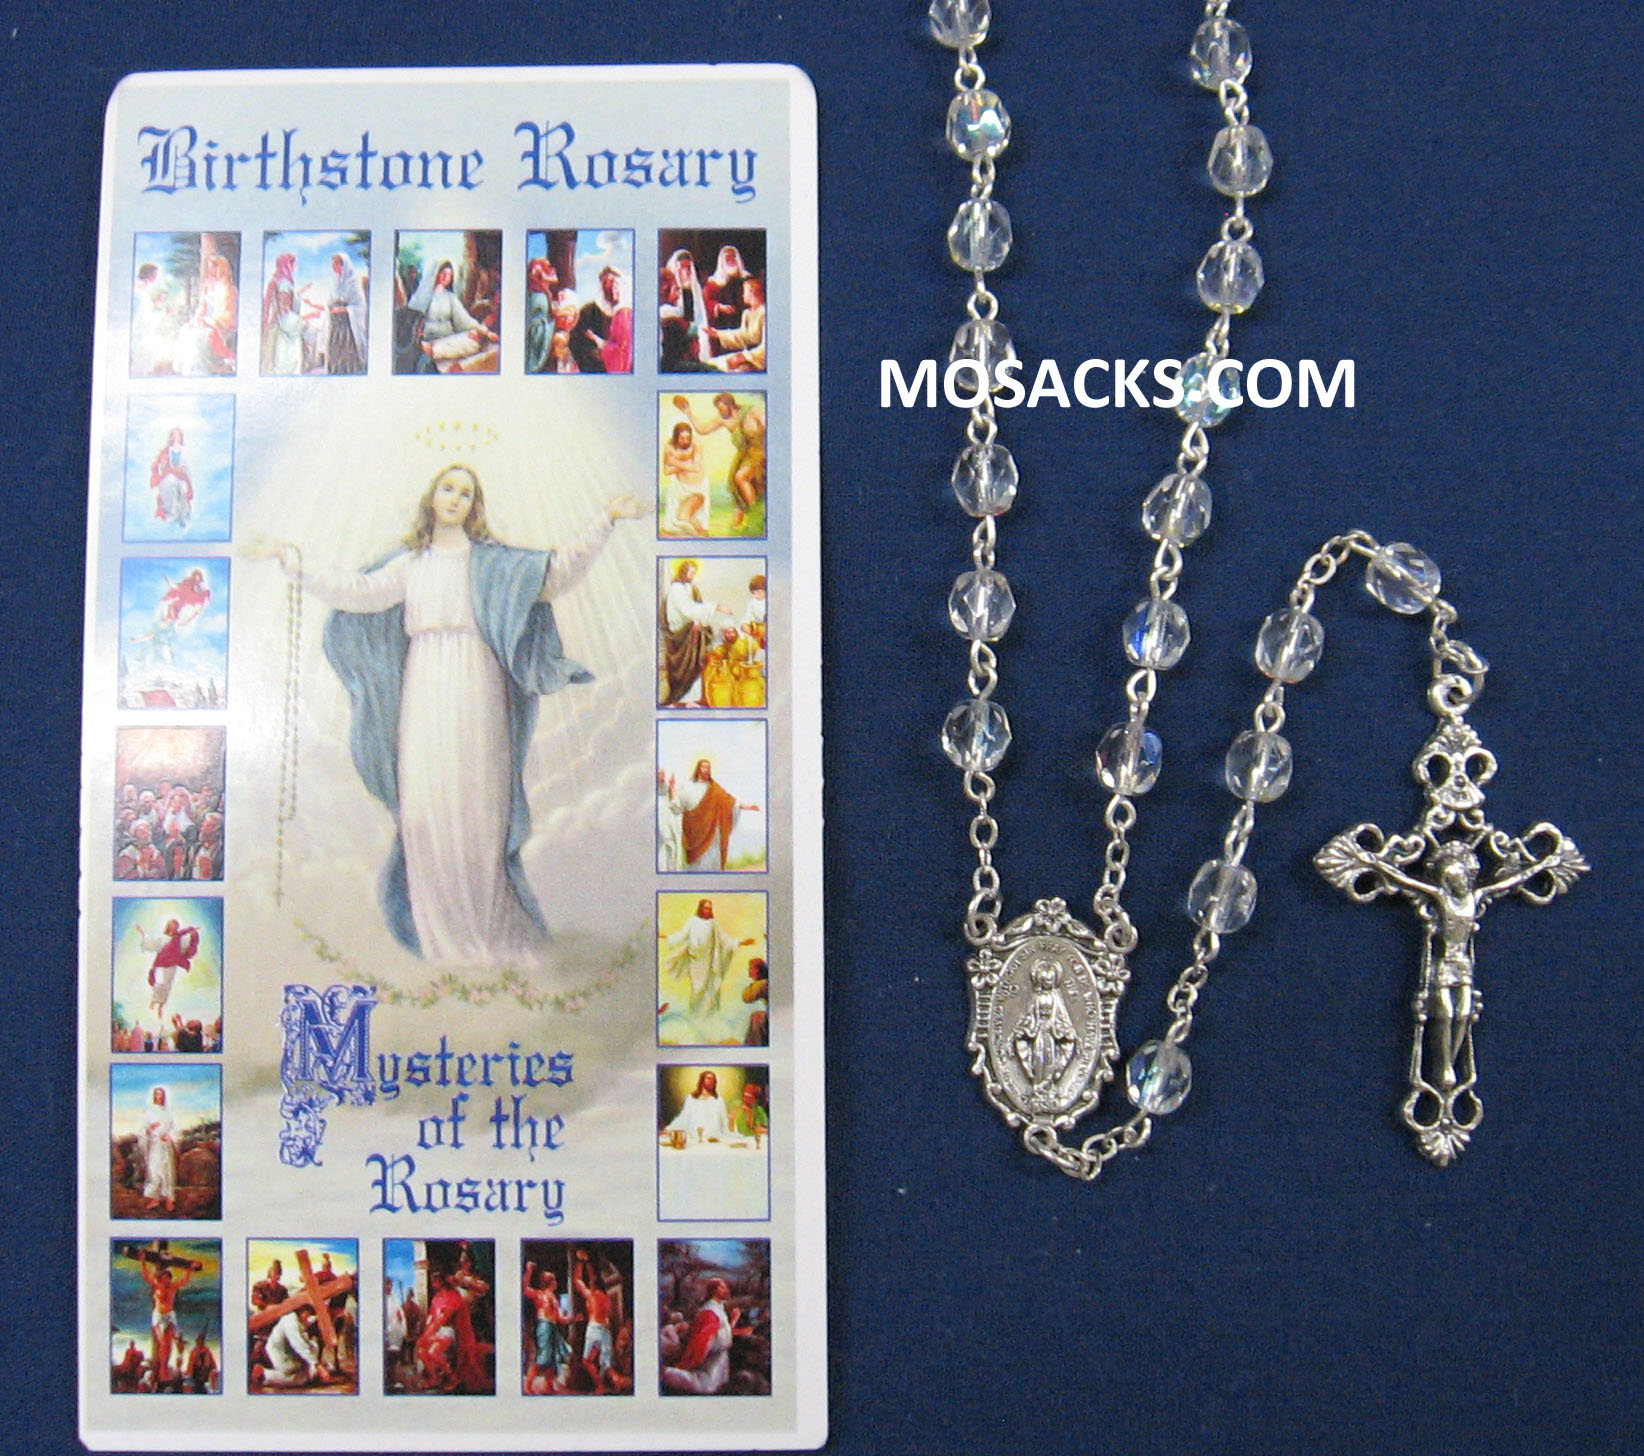 April Crystal Aurora Borealis Birthstone Rosary 64-307/CR/C1